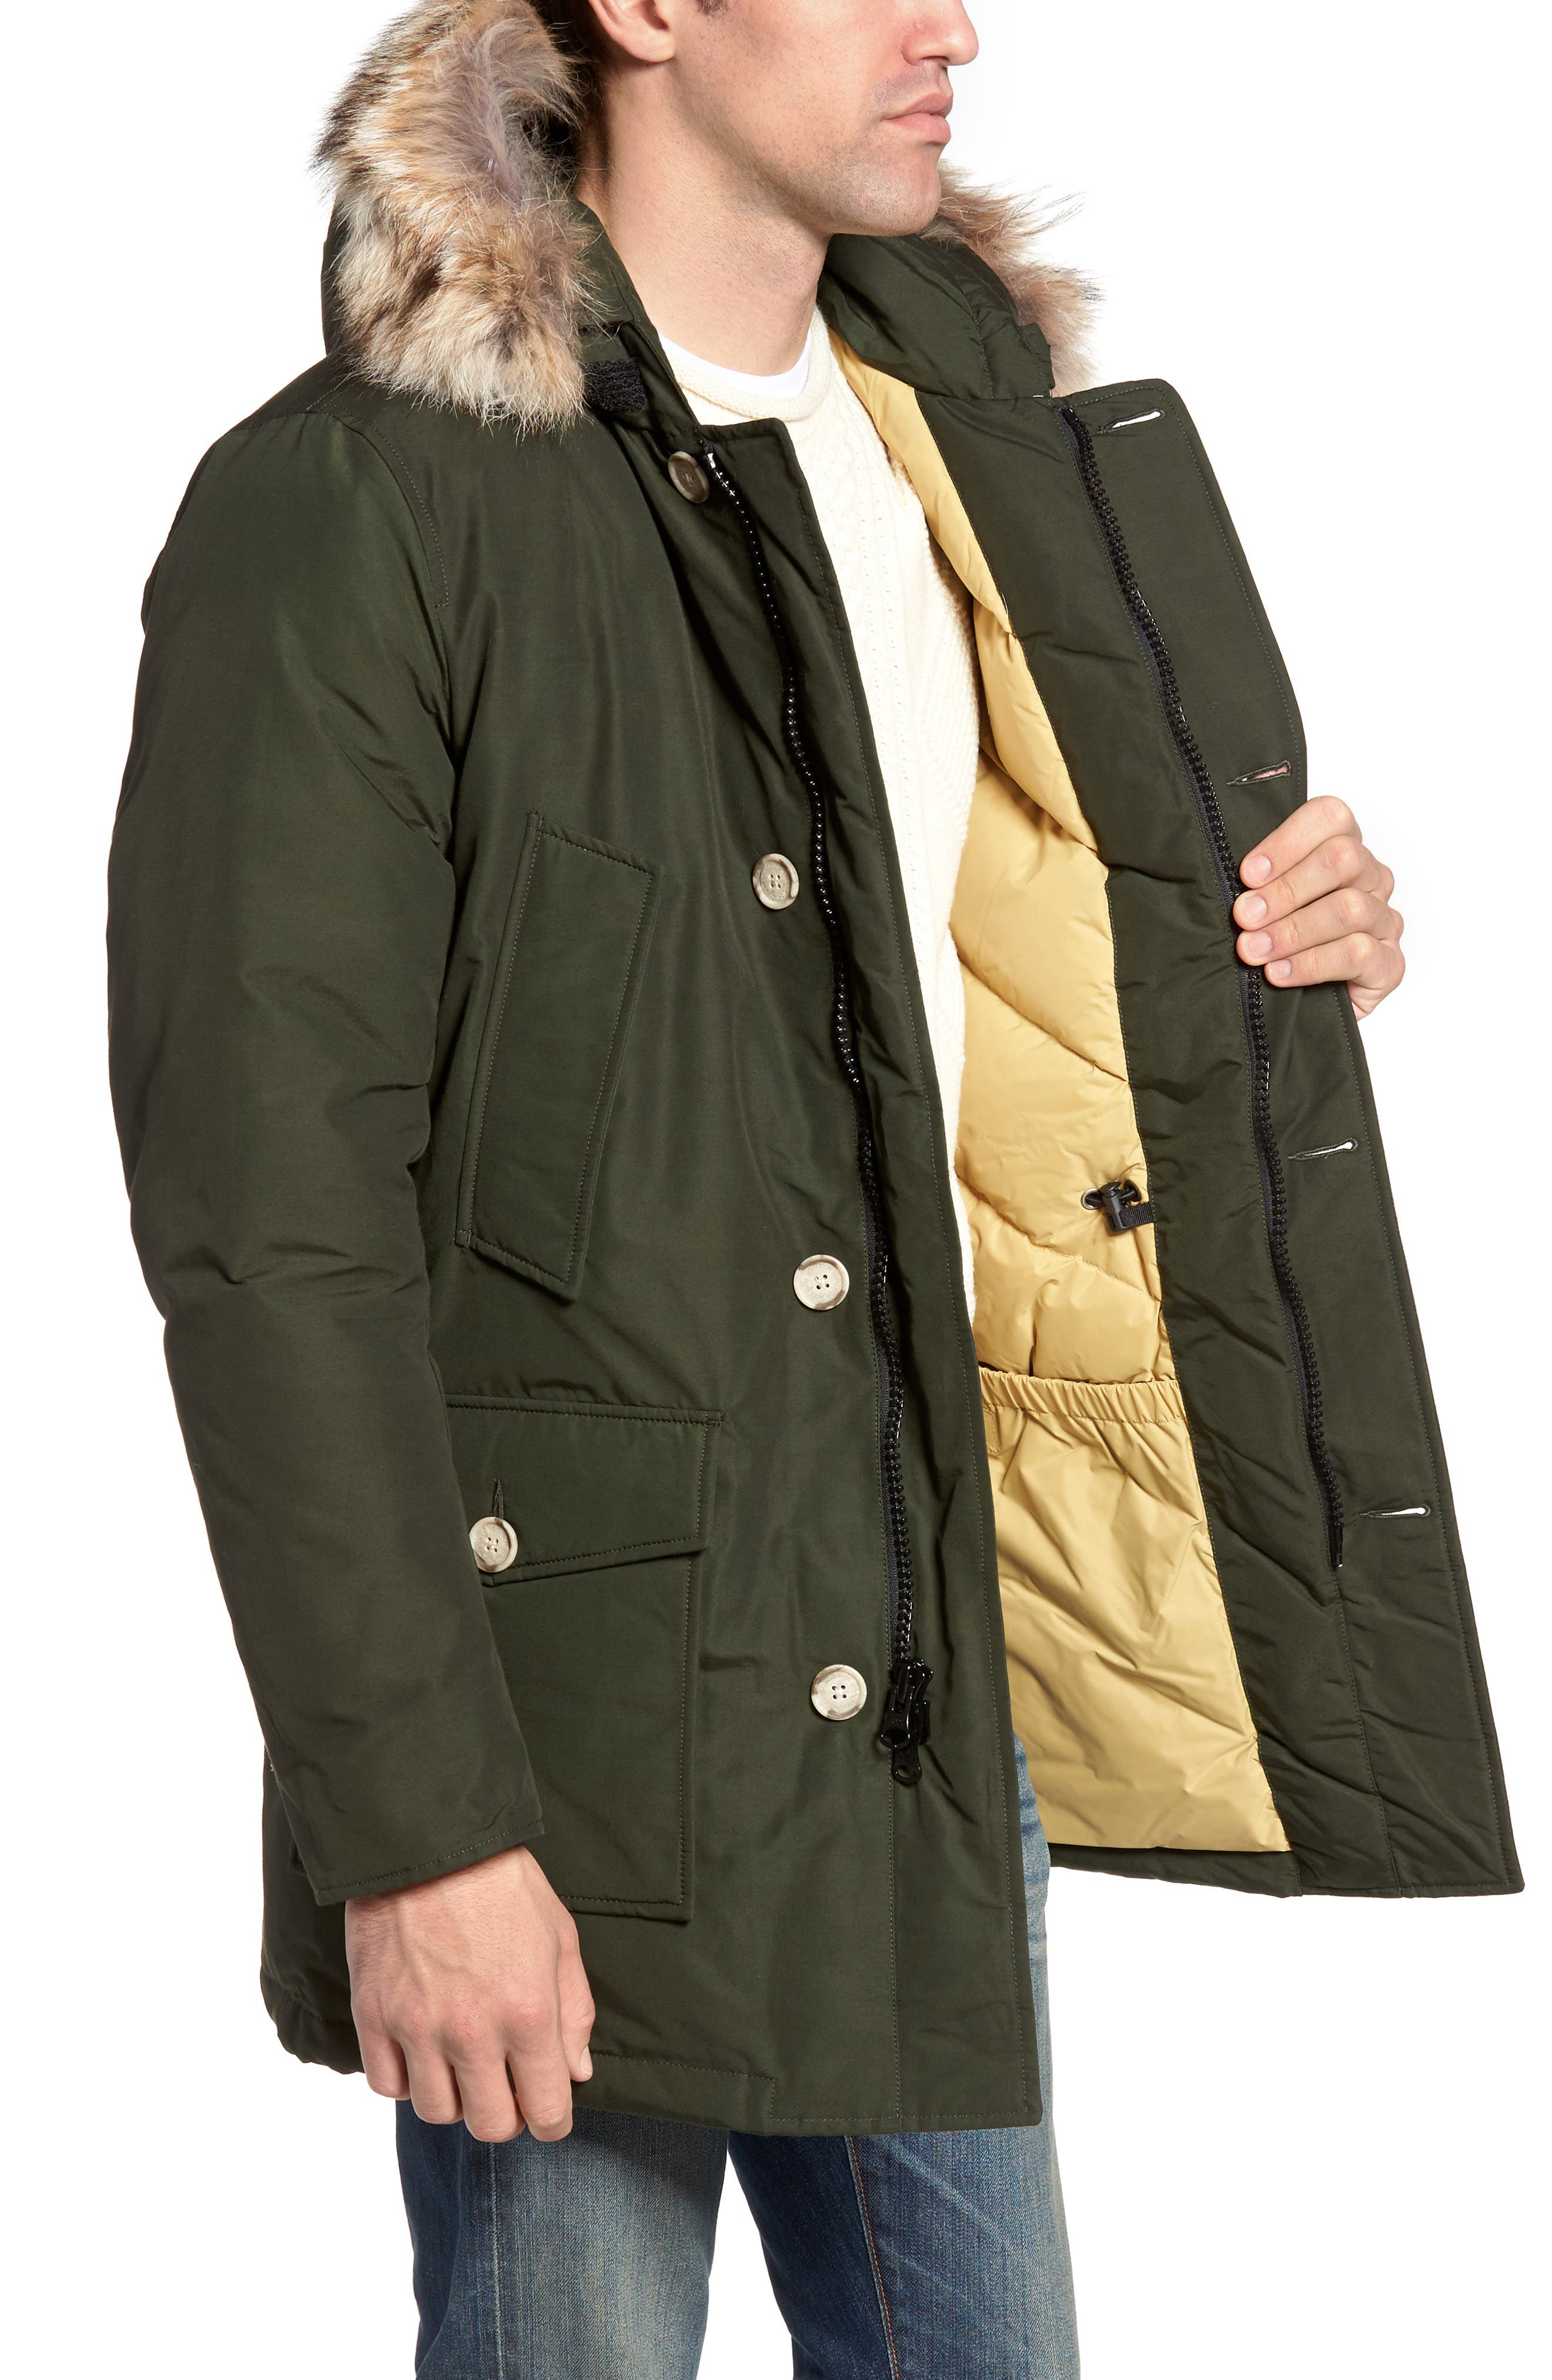 John Rich & Bros. Arctic Parka with Genuine Coyote Fur Trim,                             Alternate thumbnail 3, color,                             Rosin Green